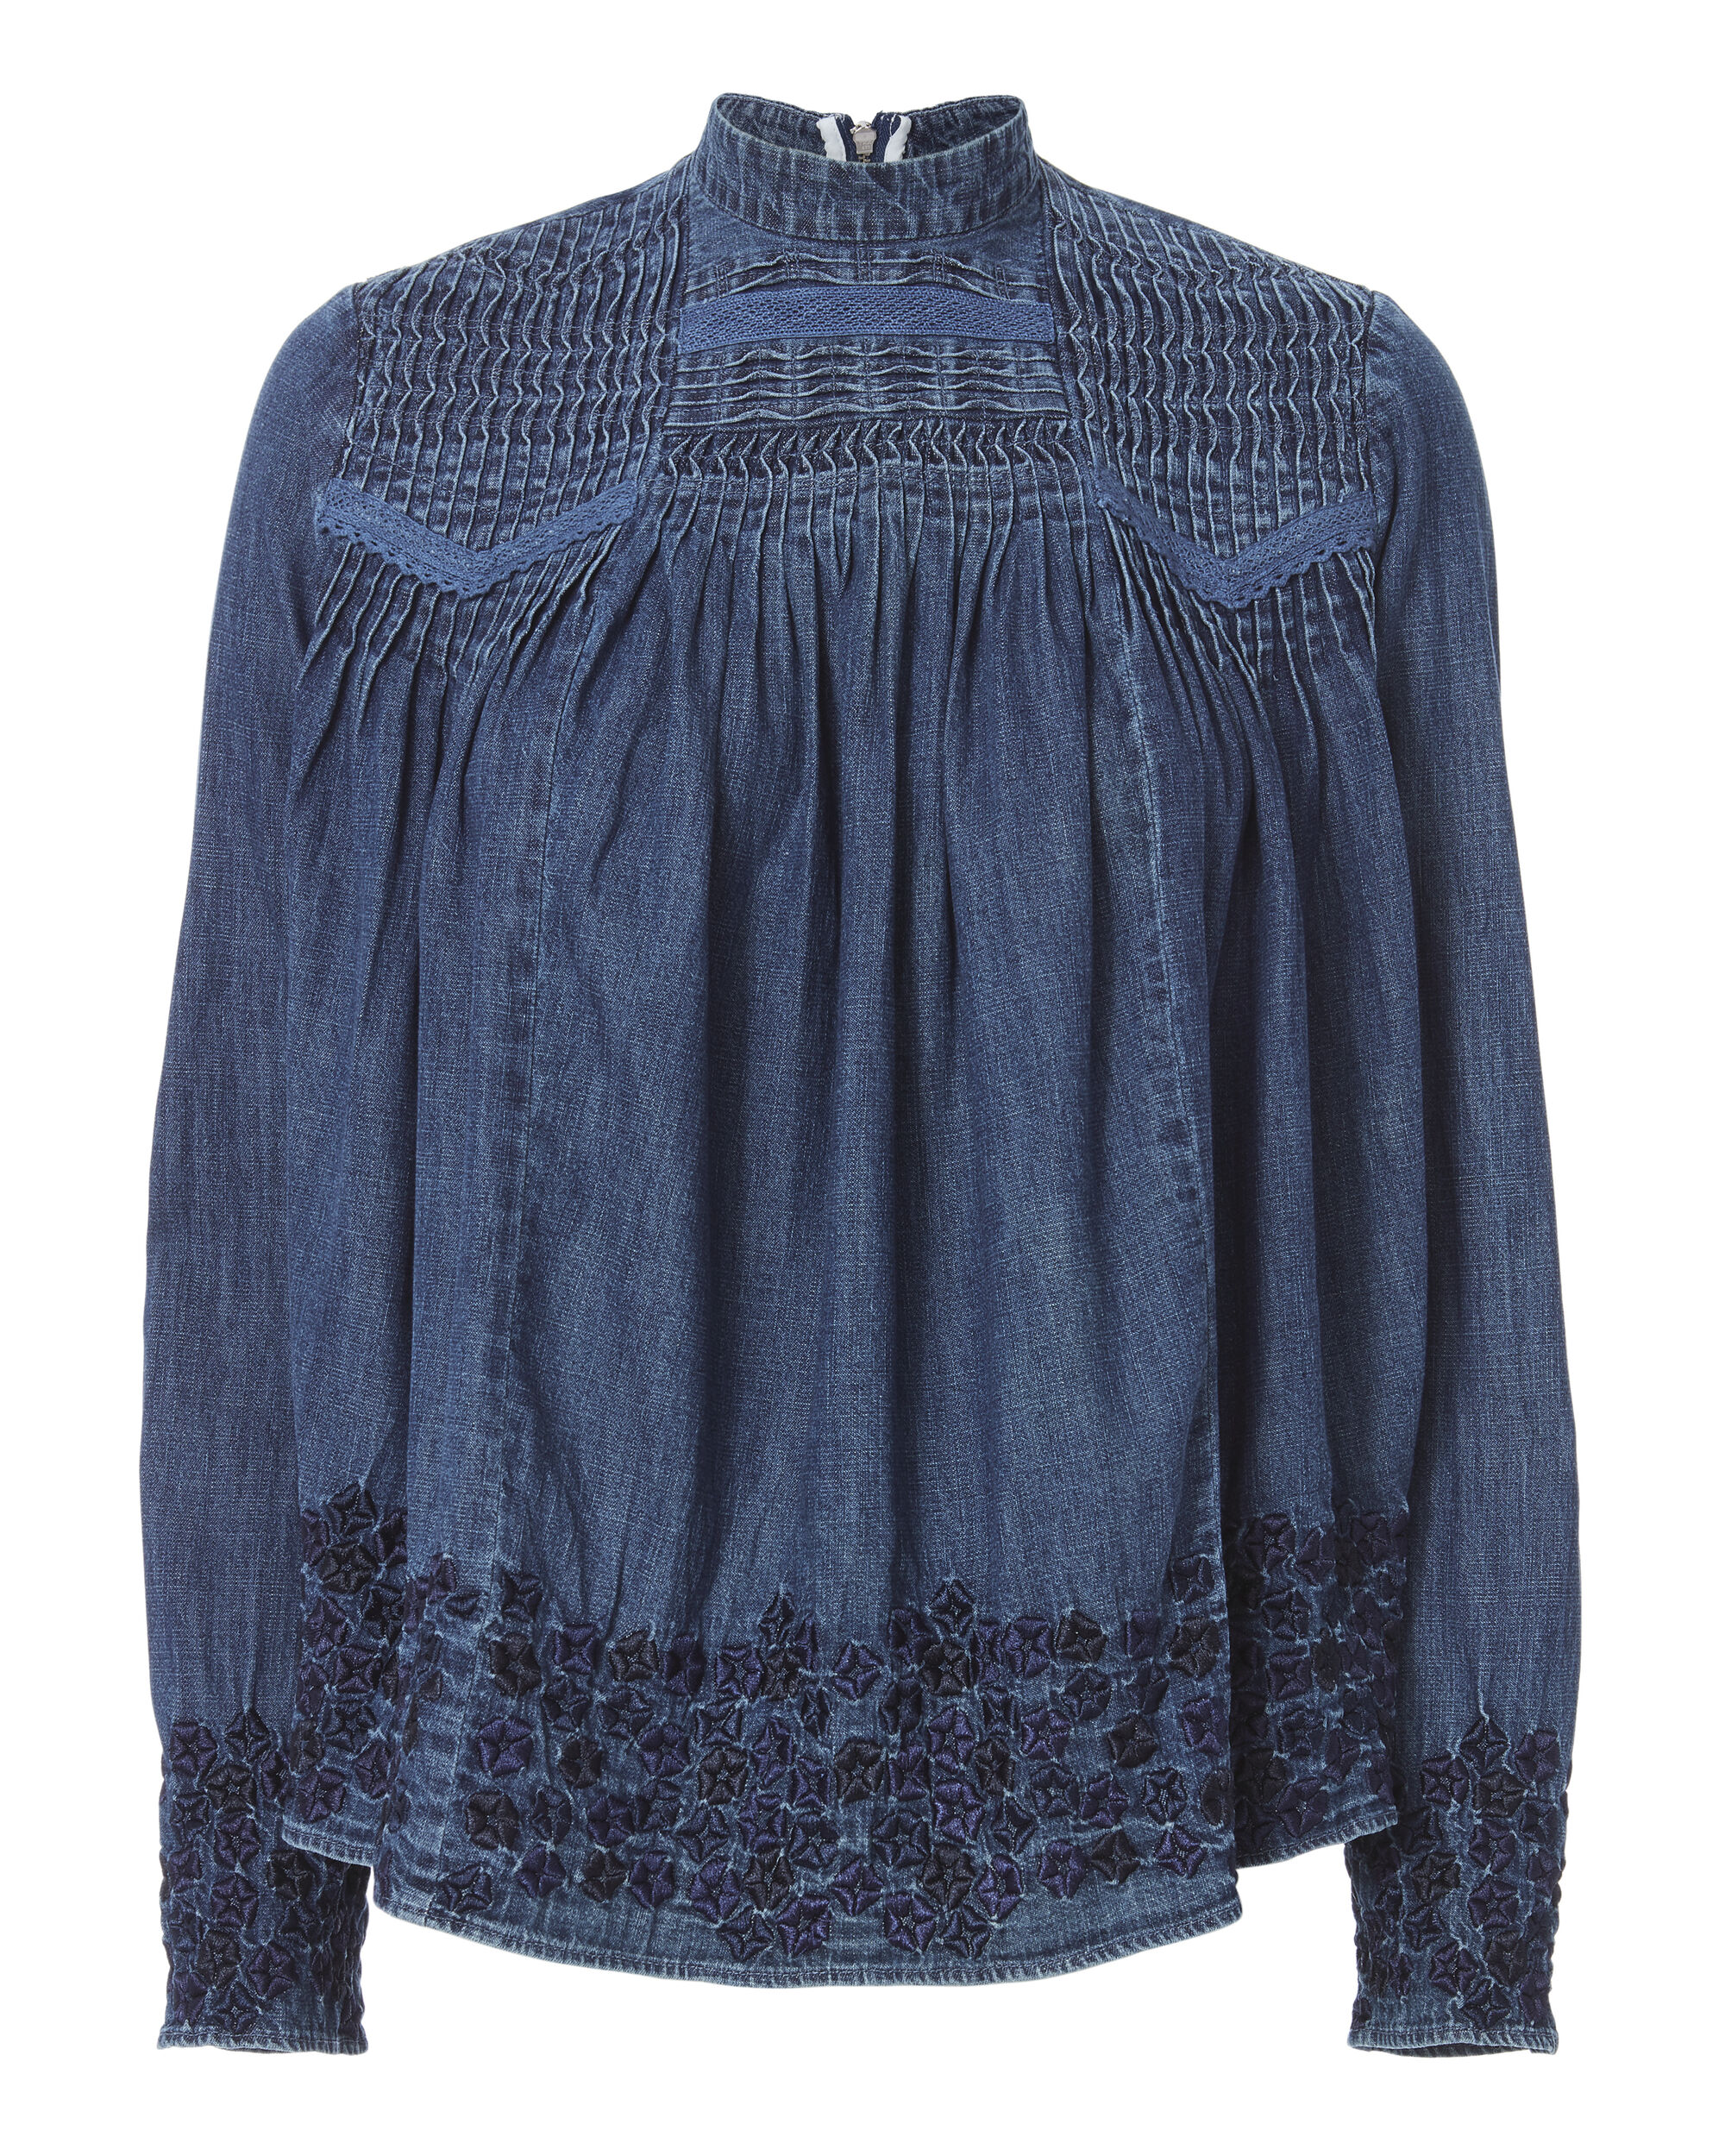 Denim Embroidered Top, DENIM-DRK, hi-res